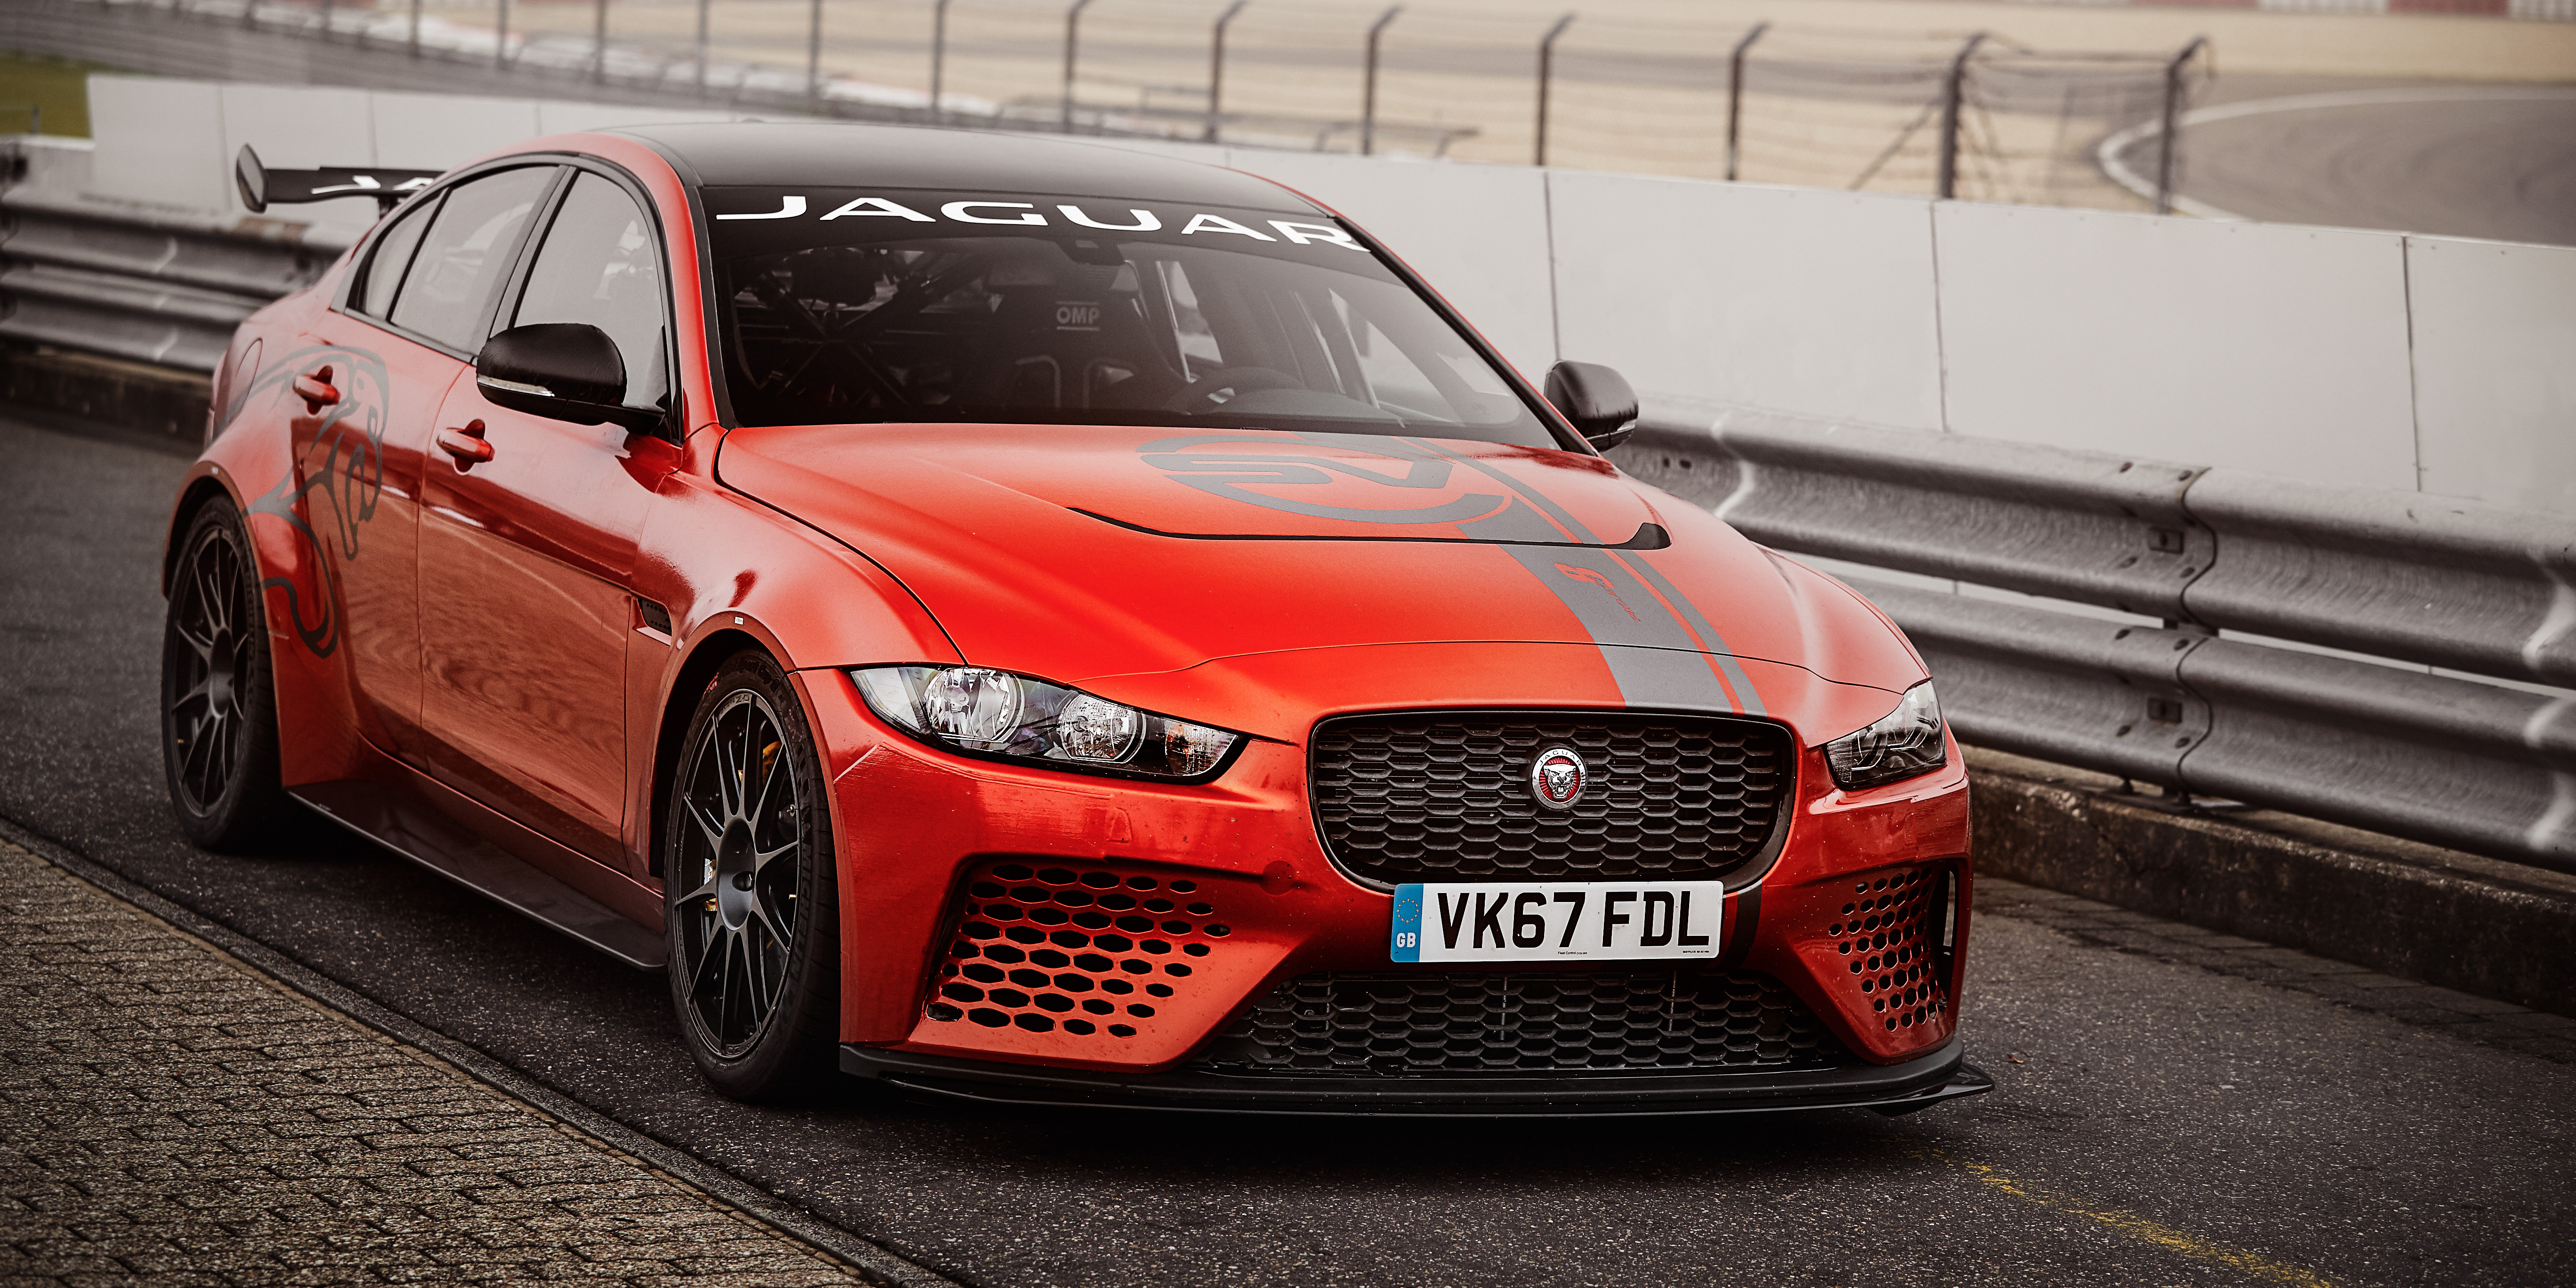 jaguar xe sv project 8 sets new nurburgring record photos. Black Bedroom Furniture Sets. Home Design Ideas